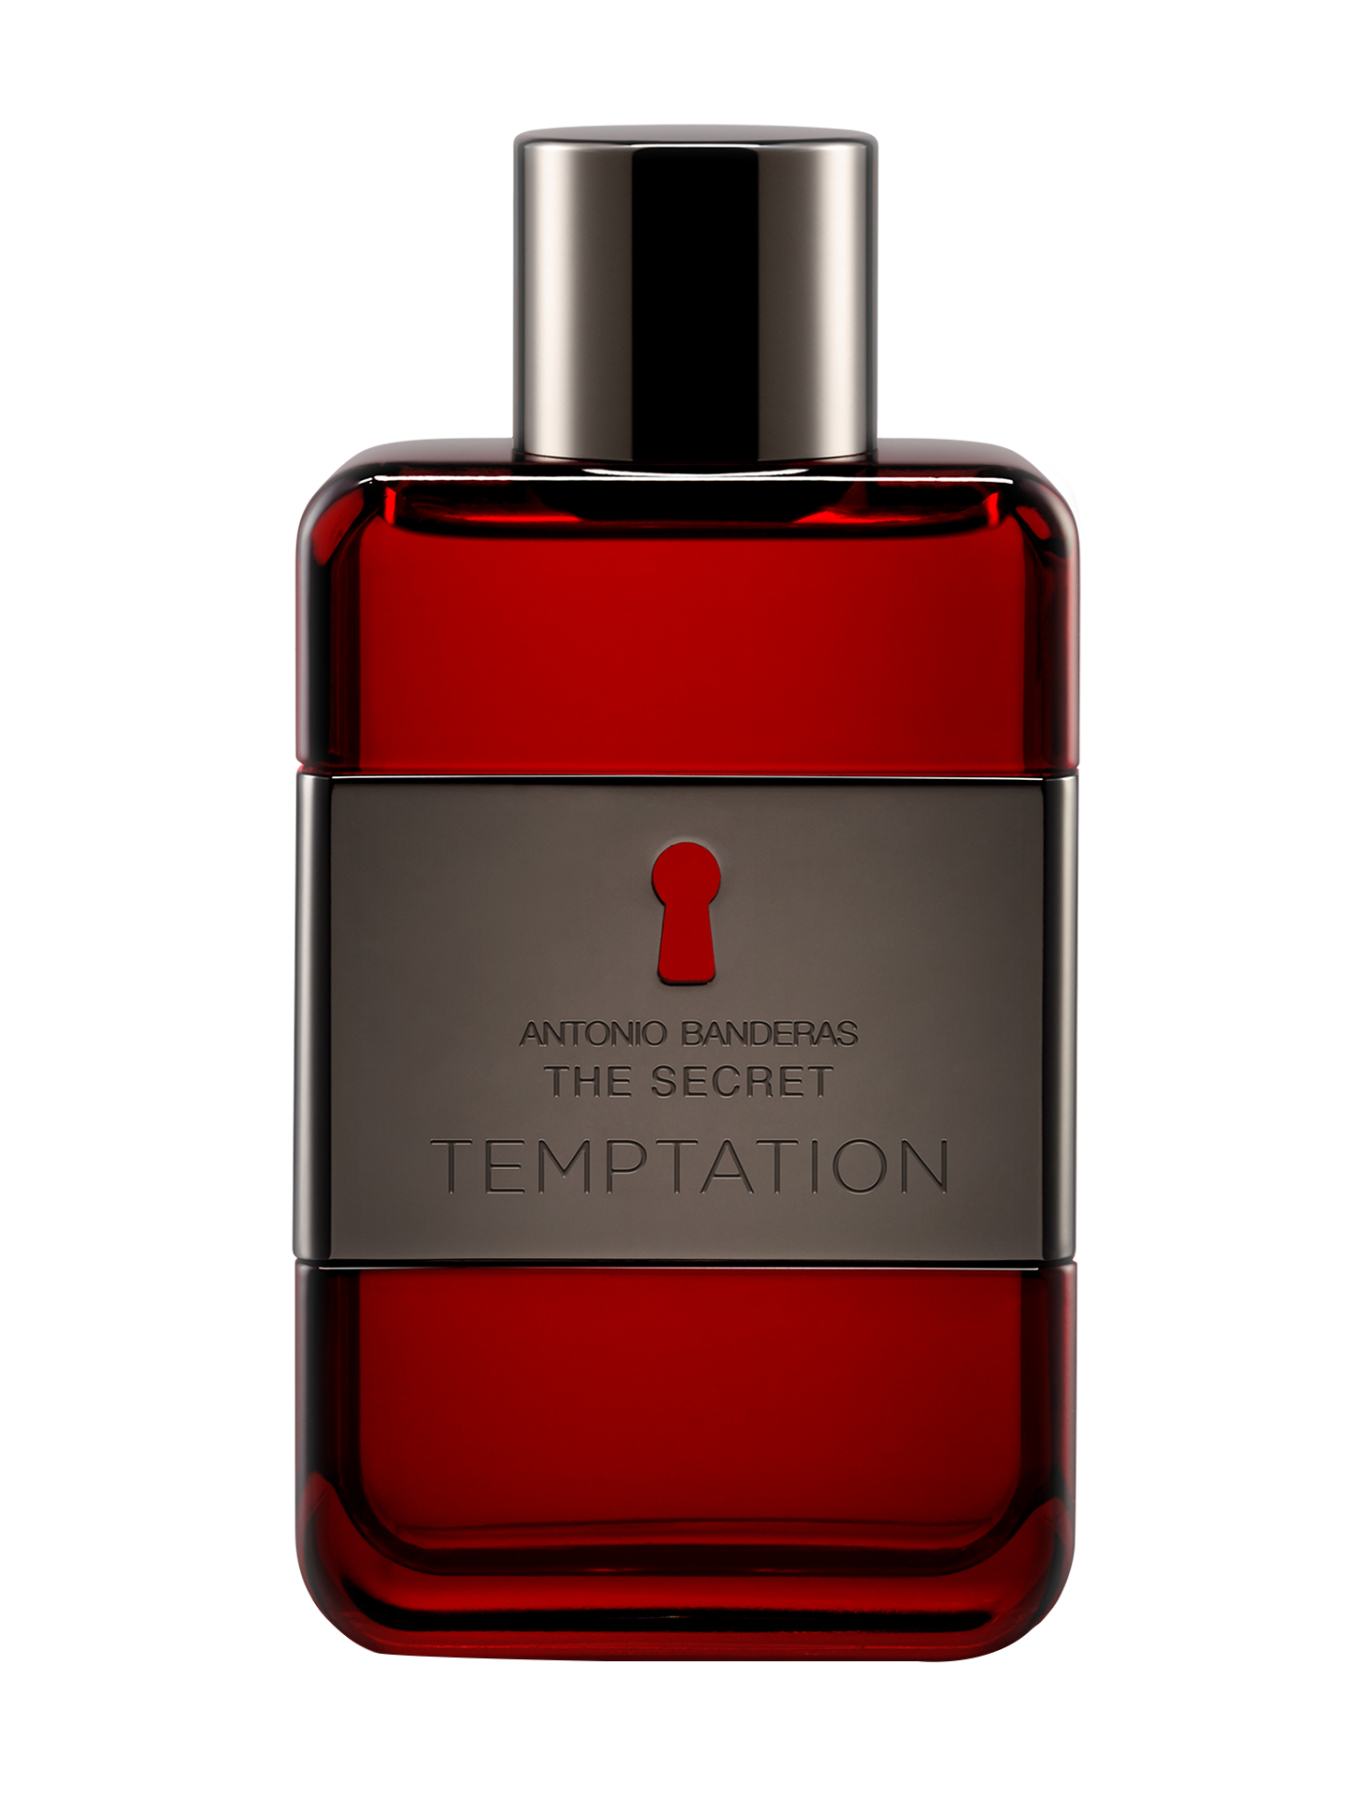 Perfume Antonio Banderas The Secret Temptation Eau De Toilette Perfume 50 Ml